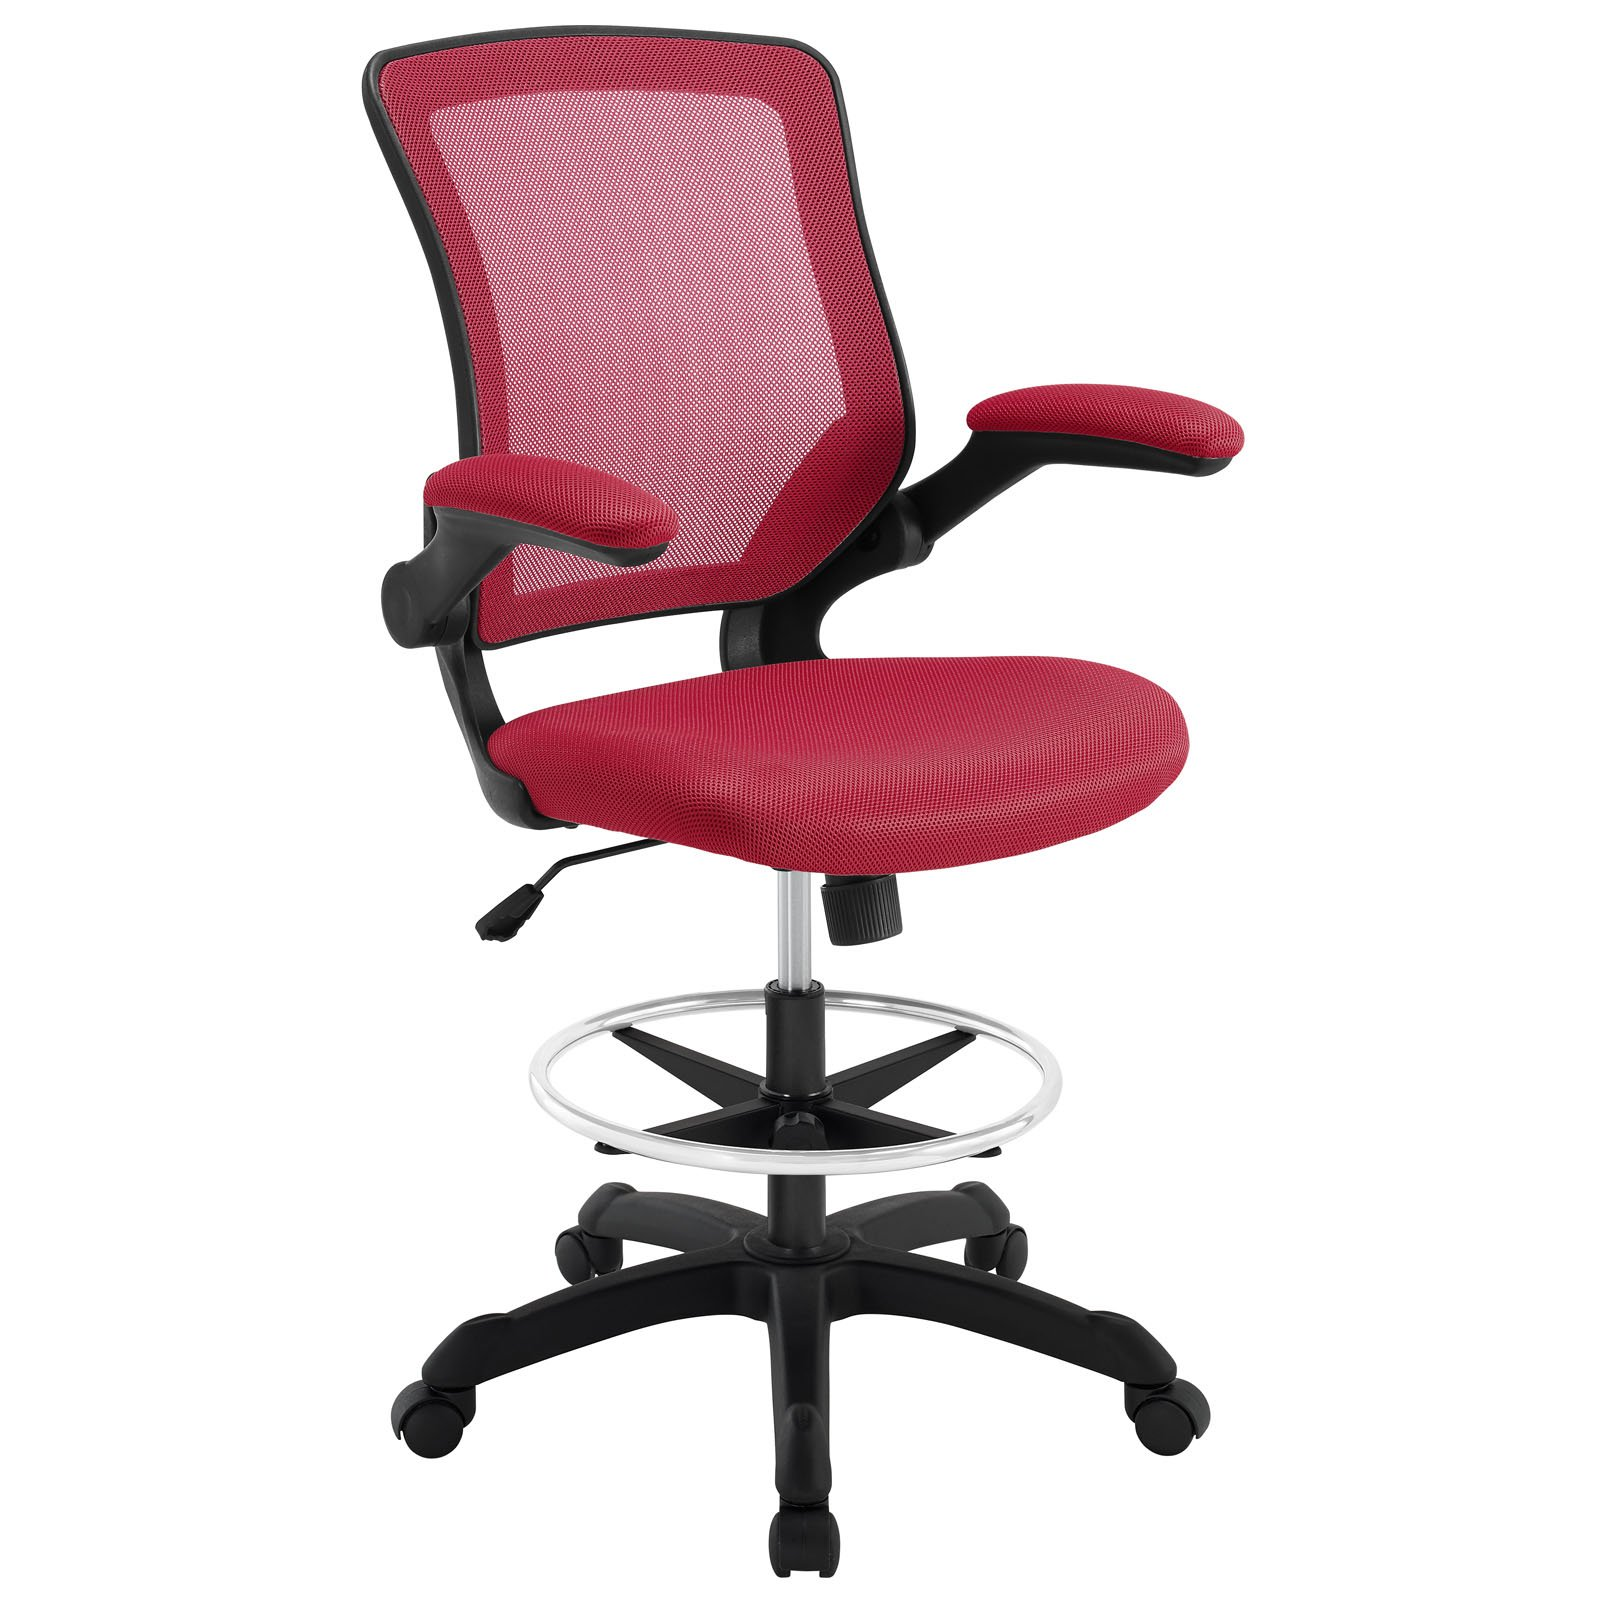 Modway Veer Drafting Chair In Red - Reception Desk Chair - Tall Office Chair For Adjustable Standing Desks - Flip-Up Arm Drafting Table Chair...